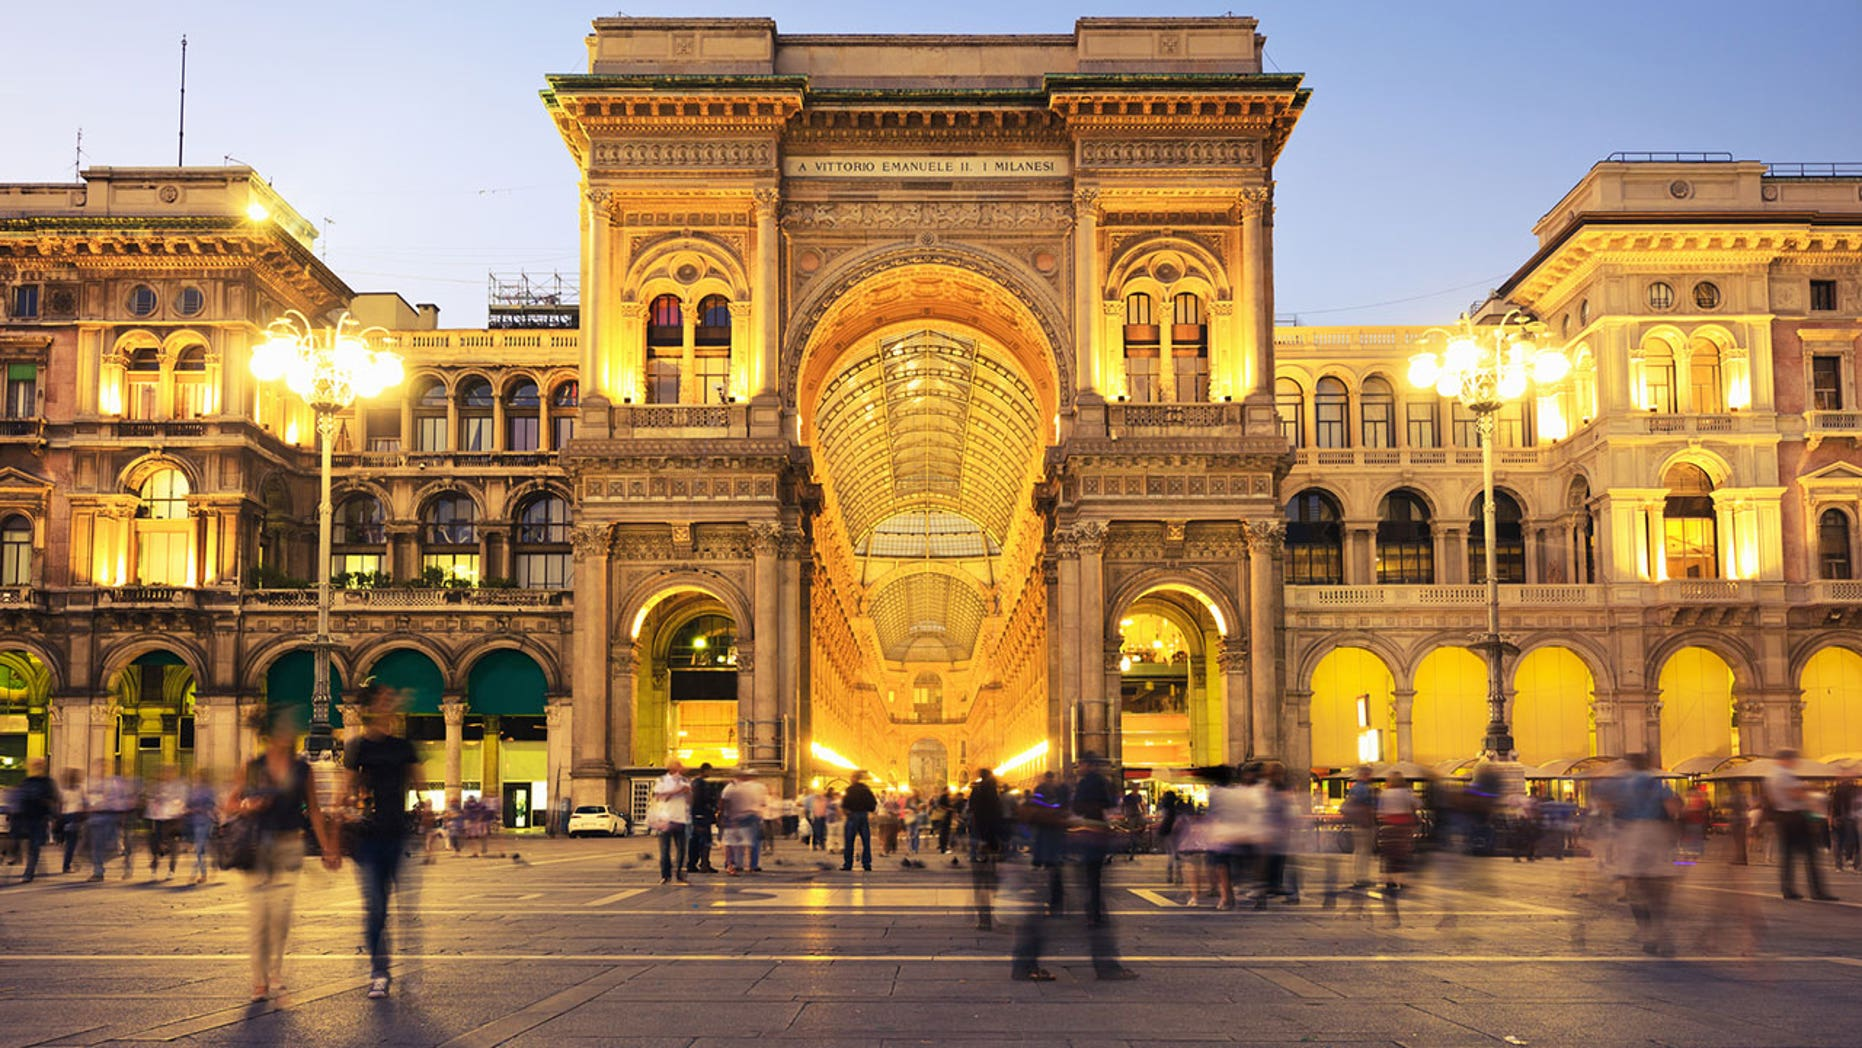 When it comes to art, design, culture and fashion, a tourist can't go wrong in Milan.